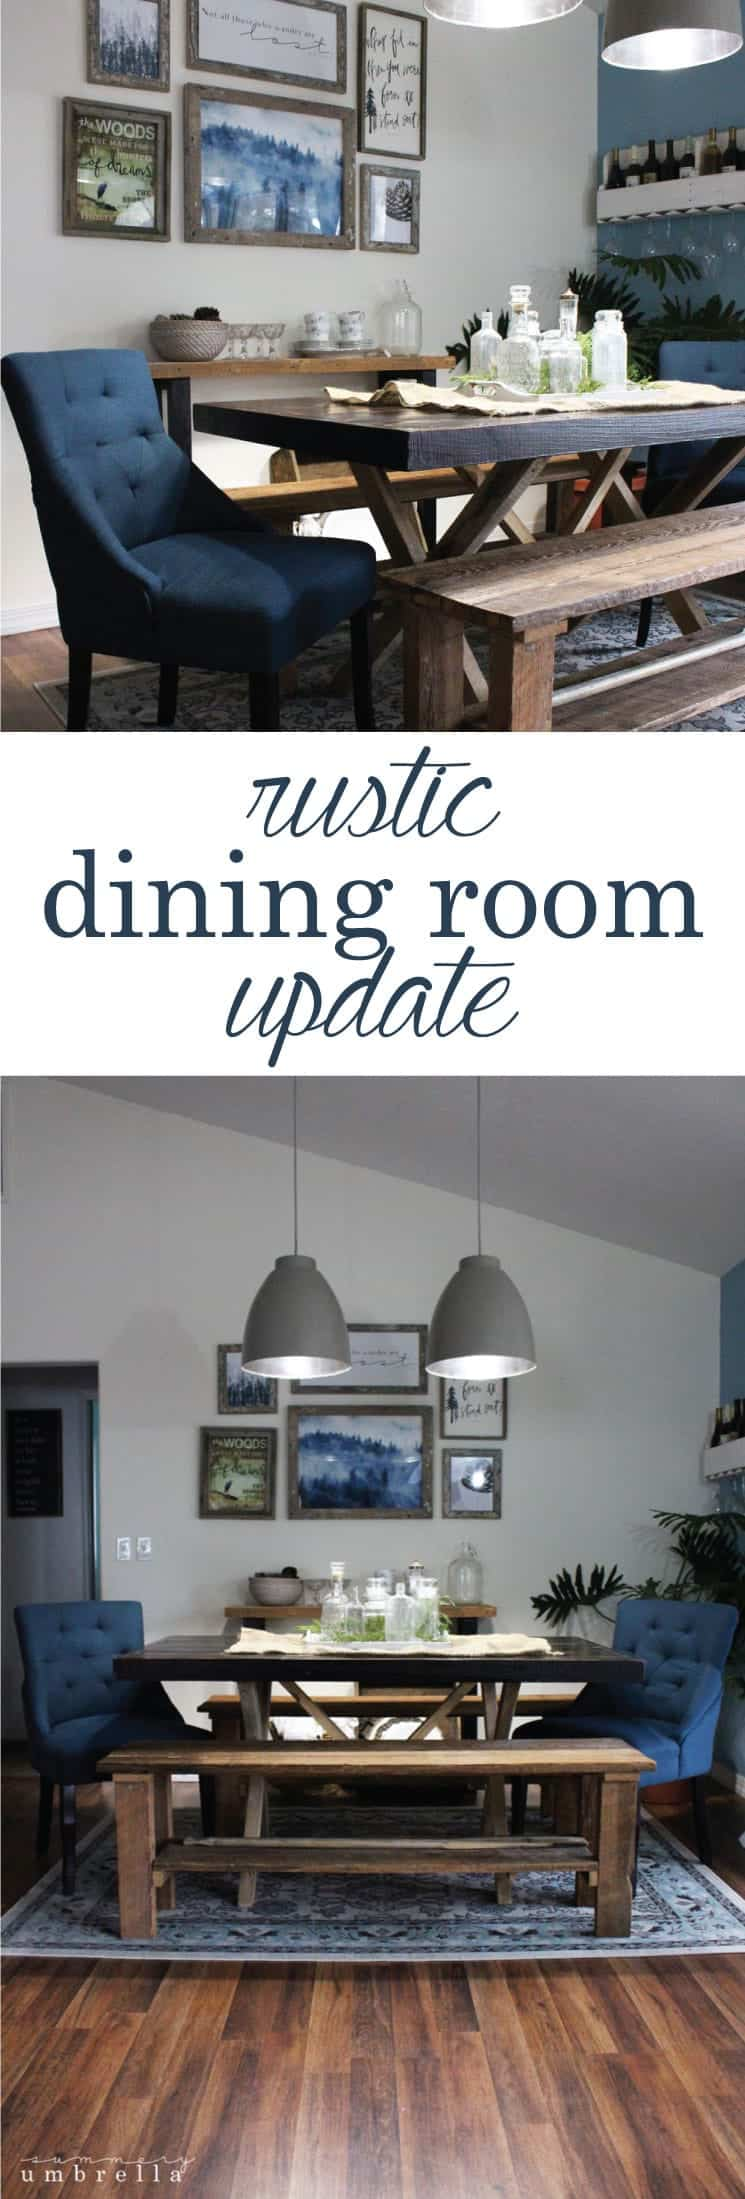 Slowly but surely I've been revamping the whole house, and I'm really excited to show you the results of my Rustic Dining Room Update today!